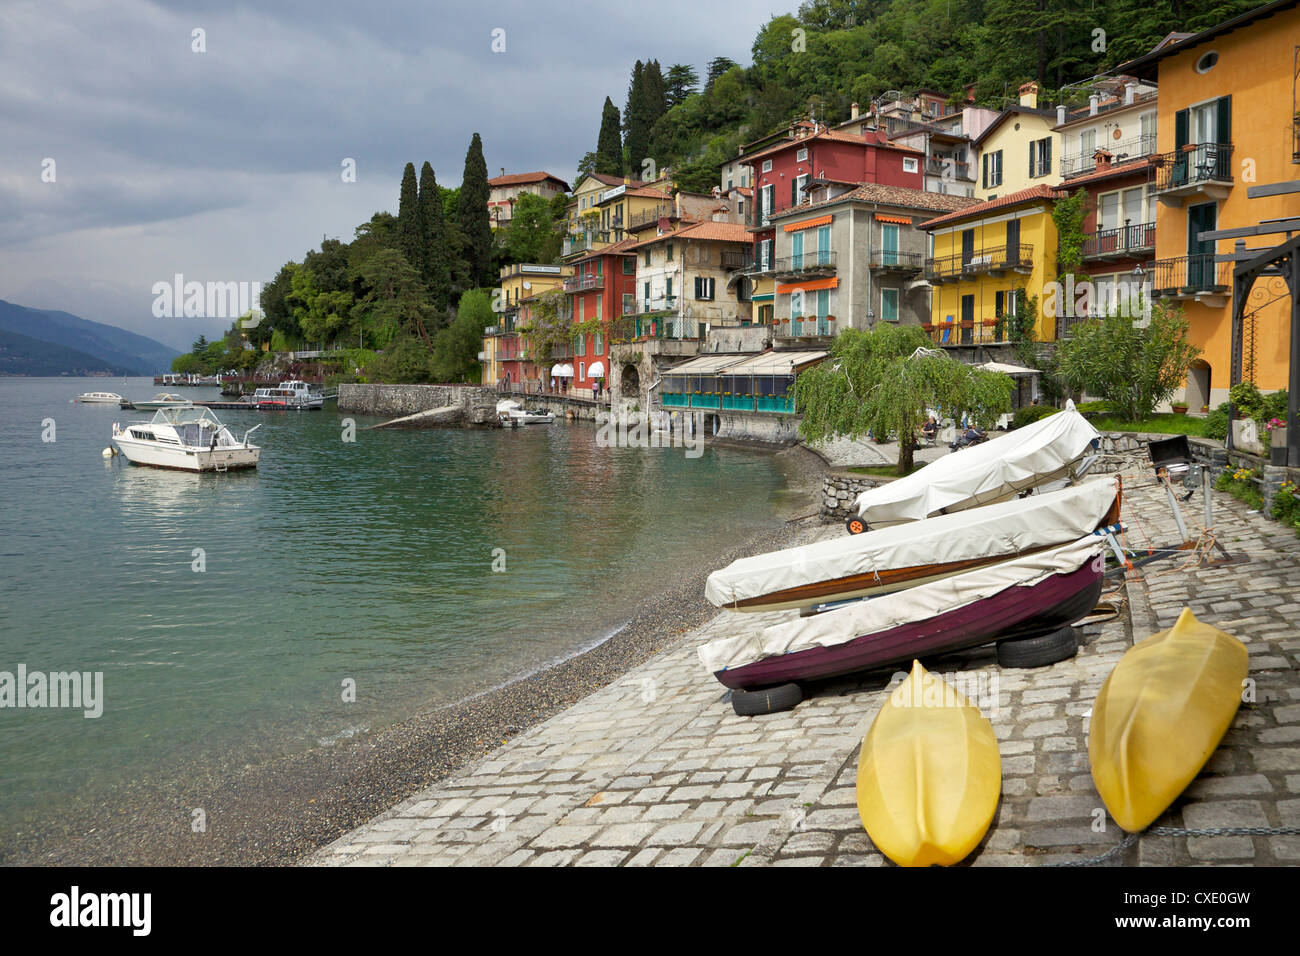 Lakeside view of the medieval village of Varenna, Lake Como, Lombardy, Italian Lakes, Italy, Europe - Stock Image